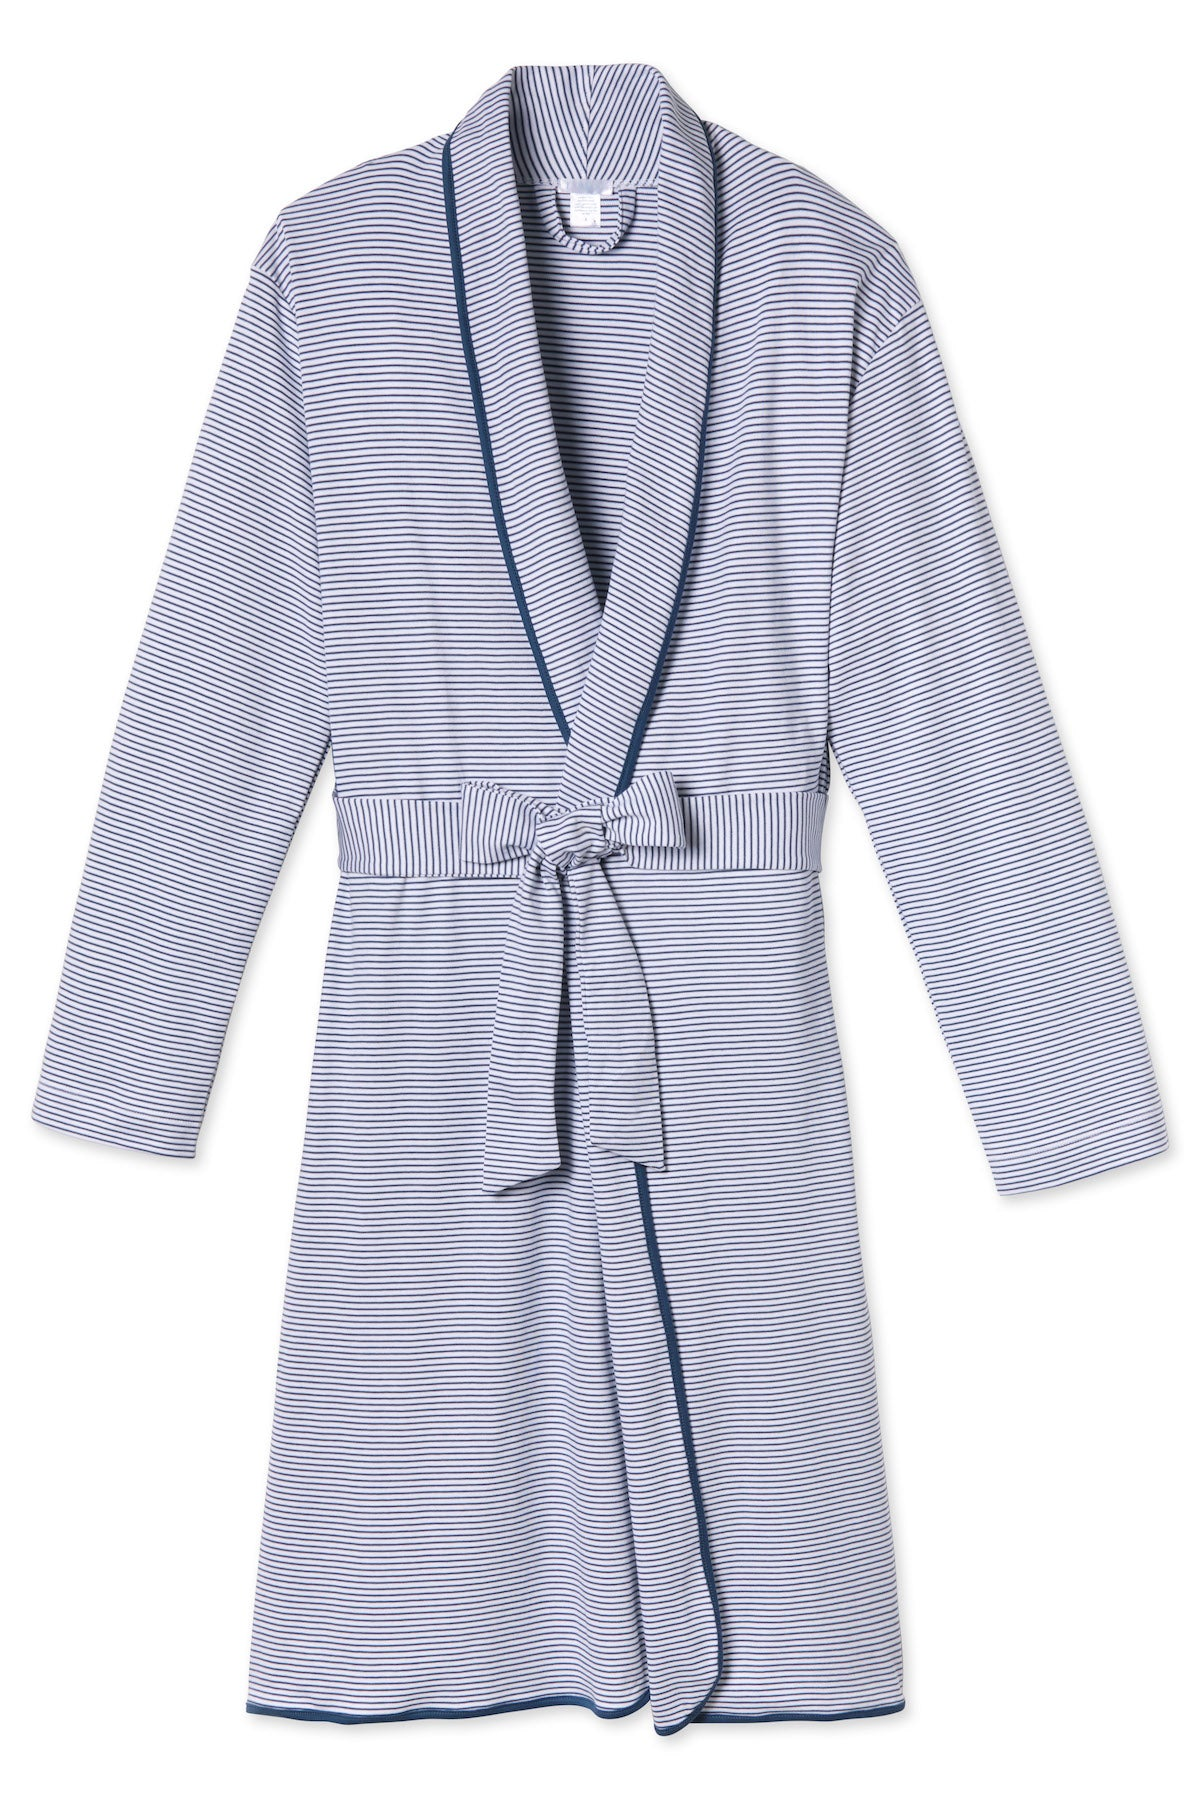 Pima Robe in Classic Navy